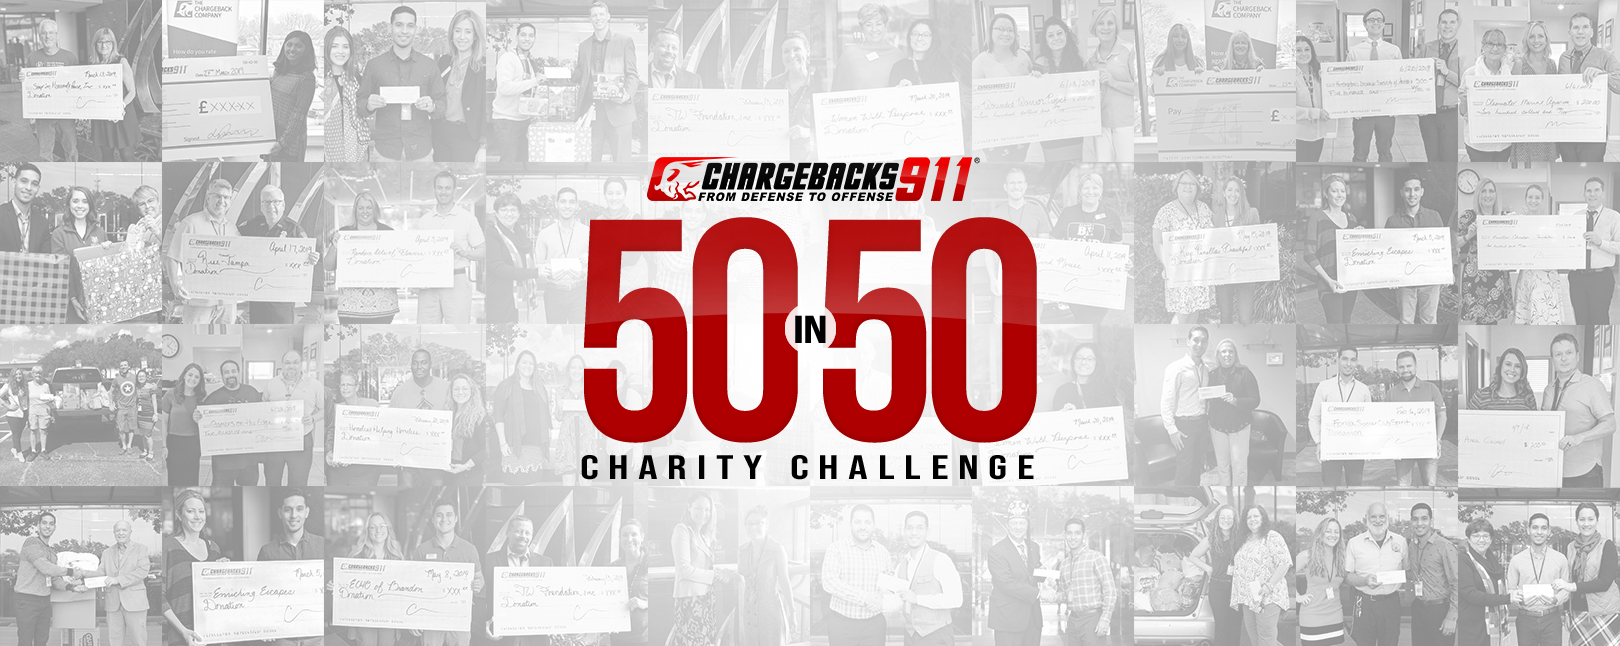 50 in 50 Charity Challange